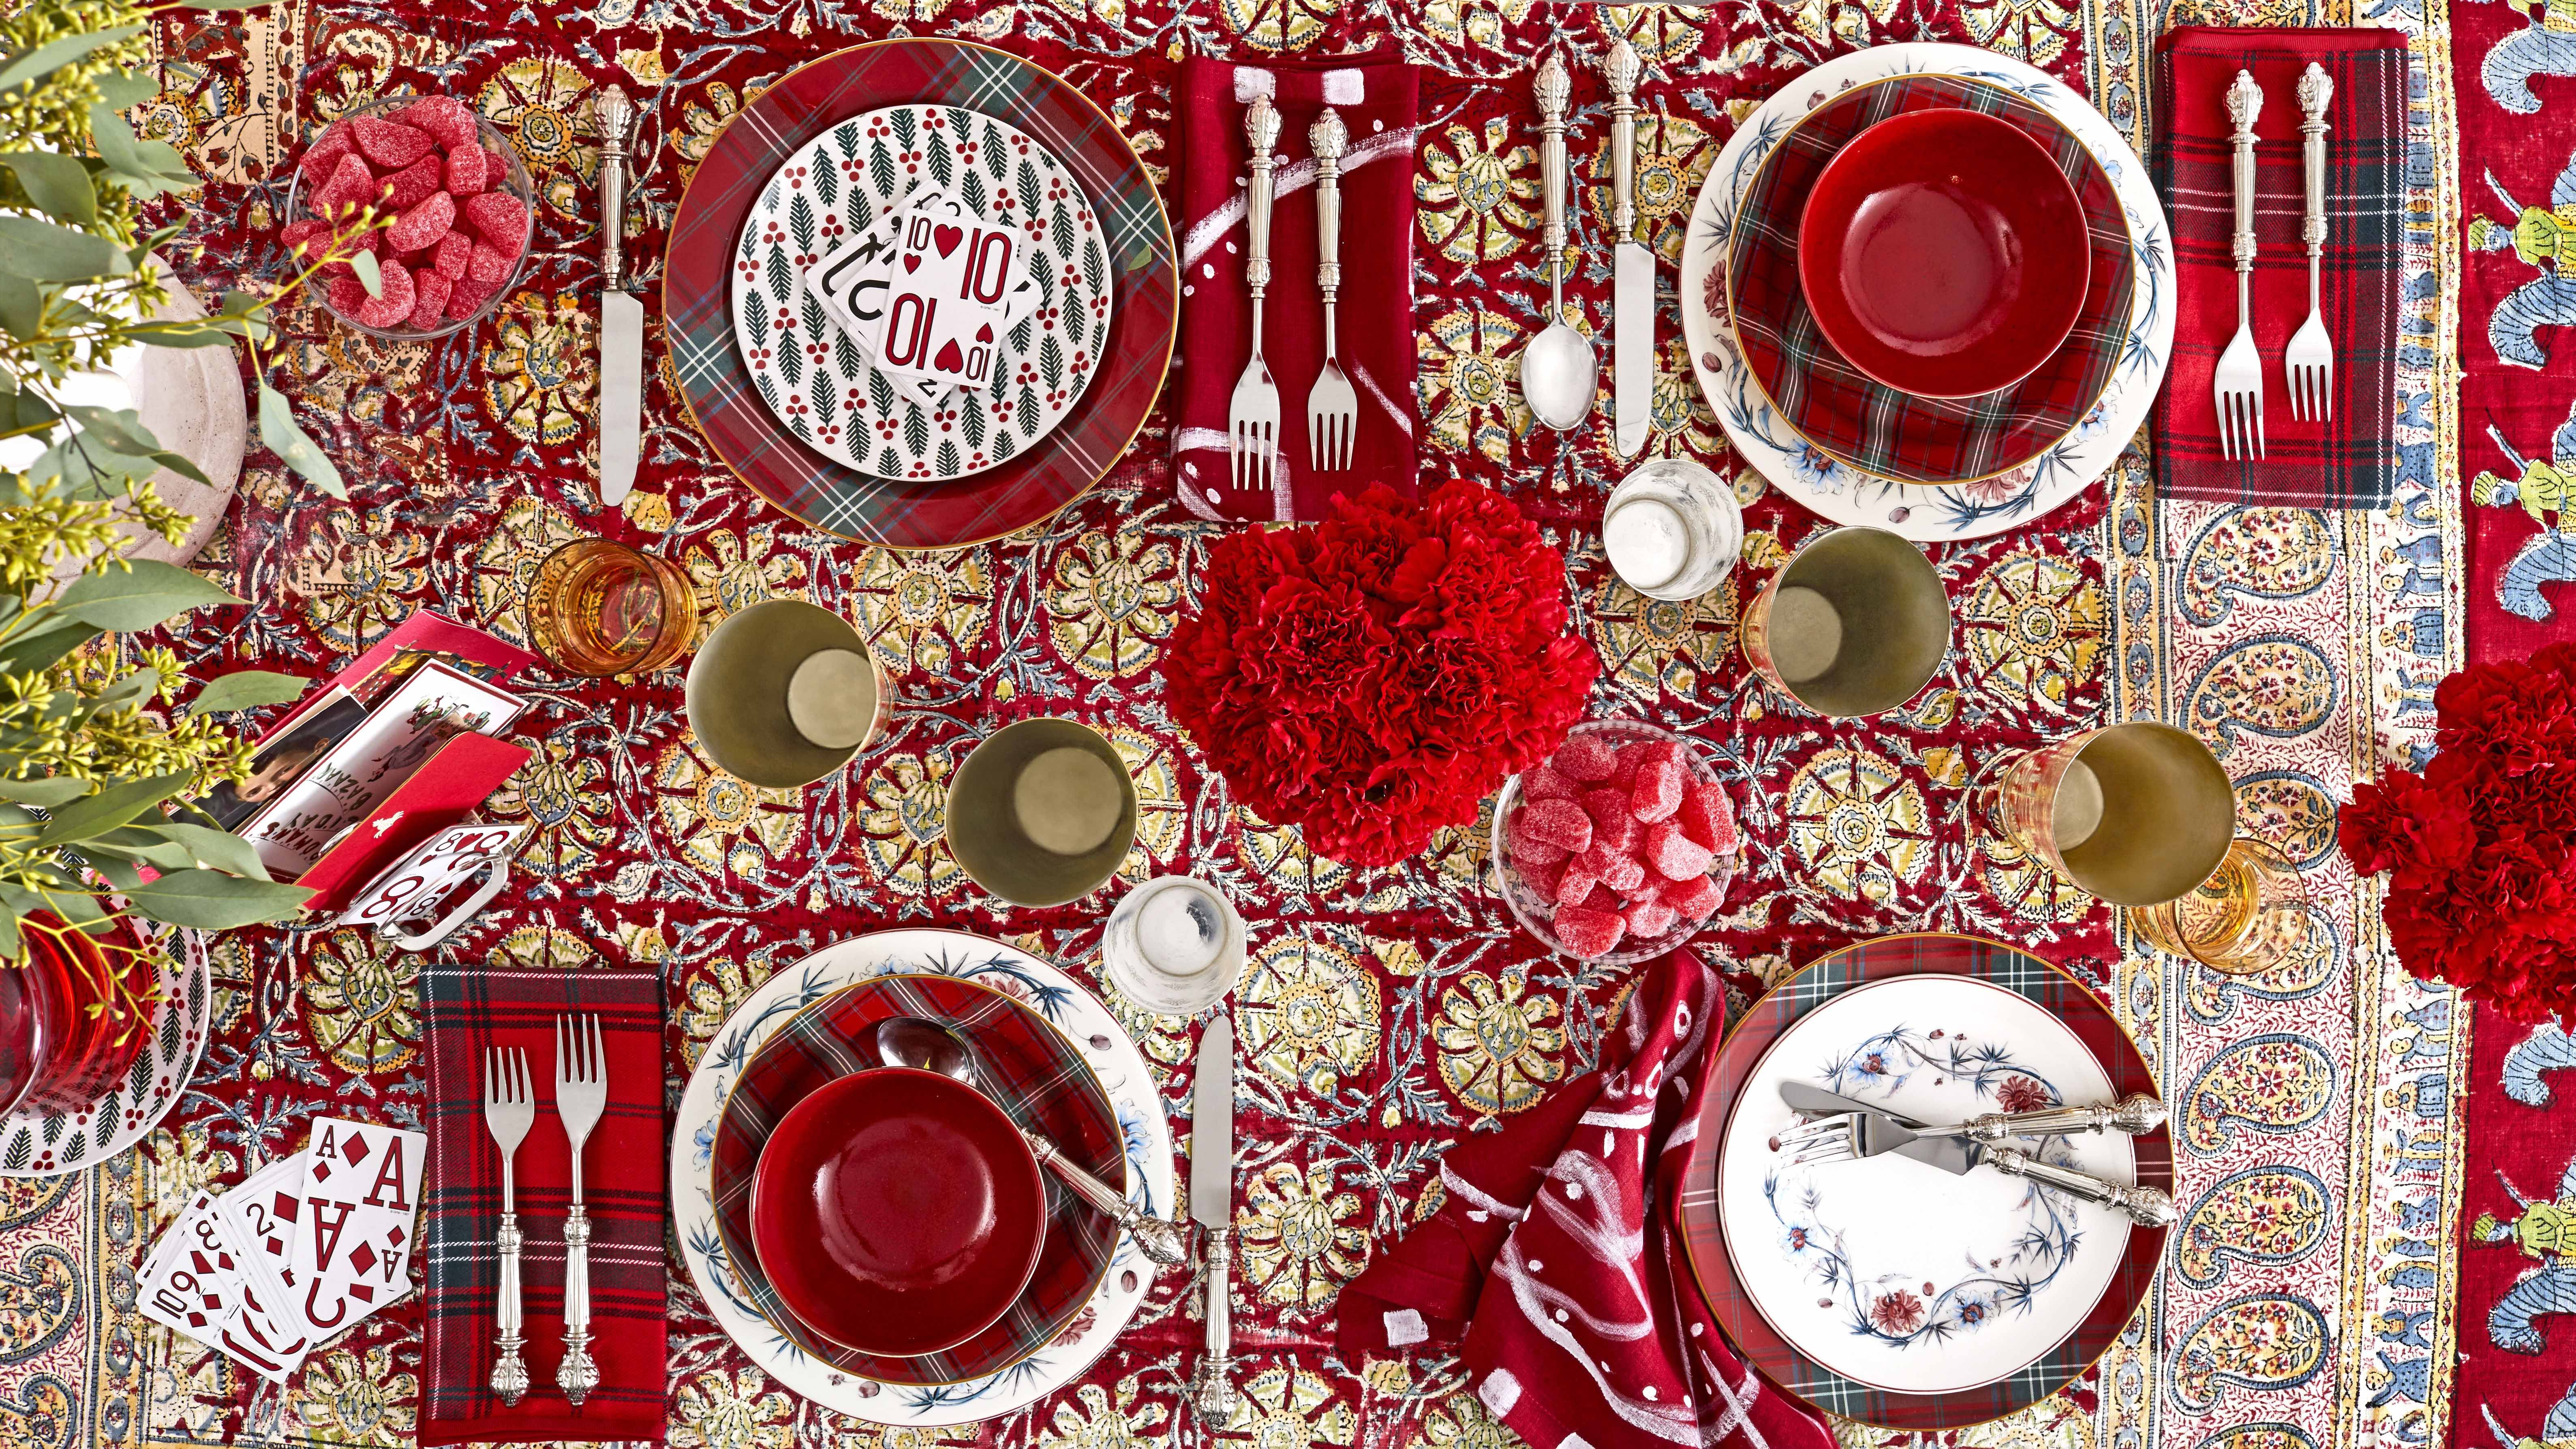 3 Instagram-Worthy Table Settings That Are So Perfect for the Holidays